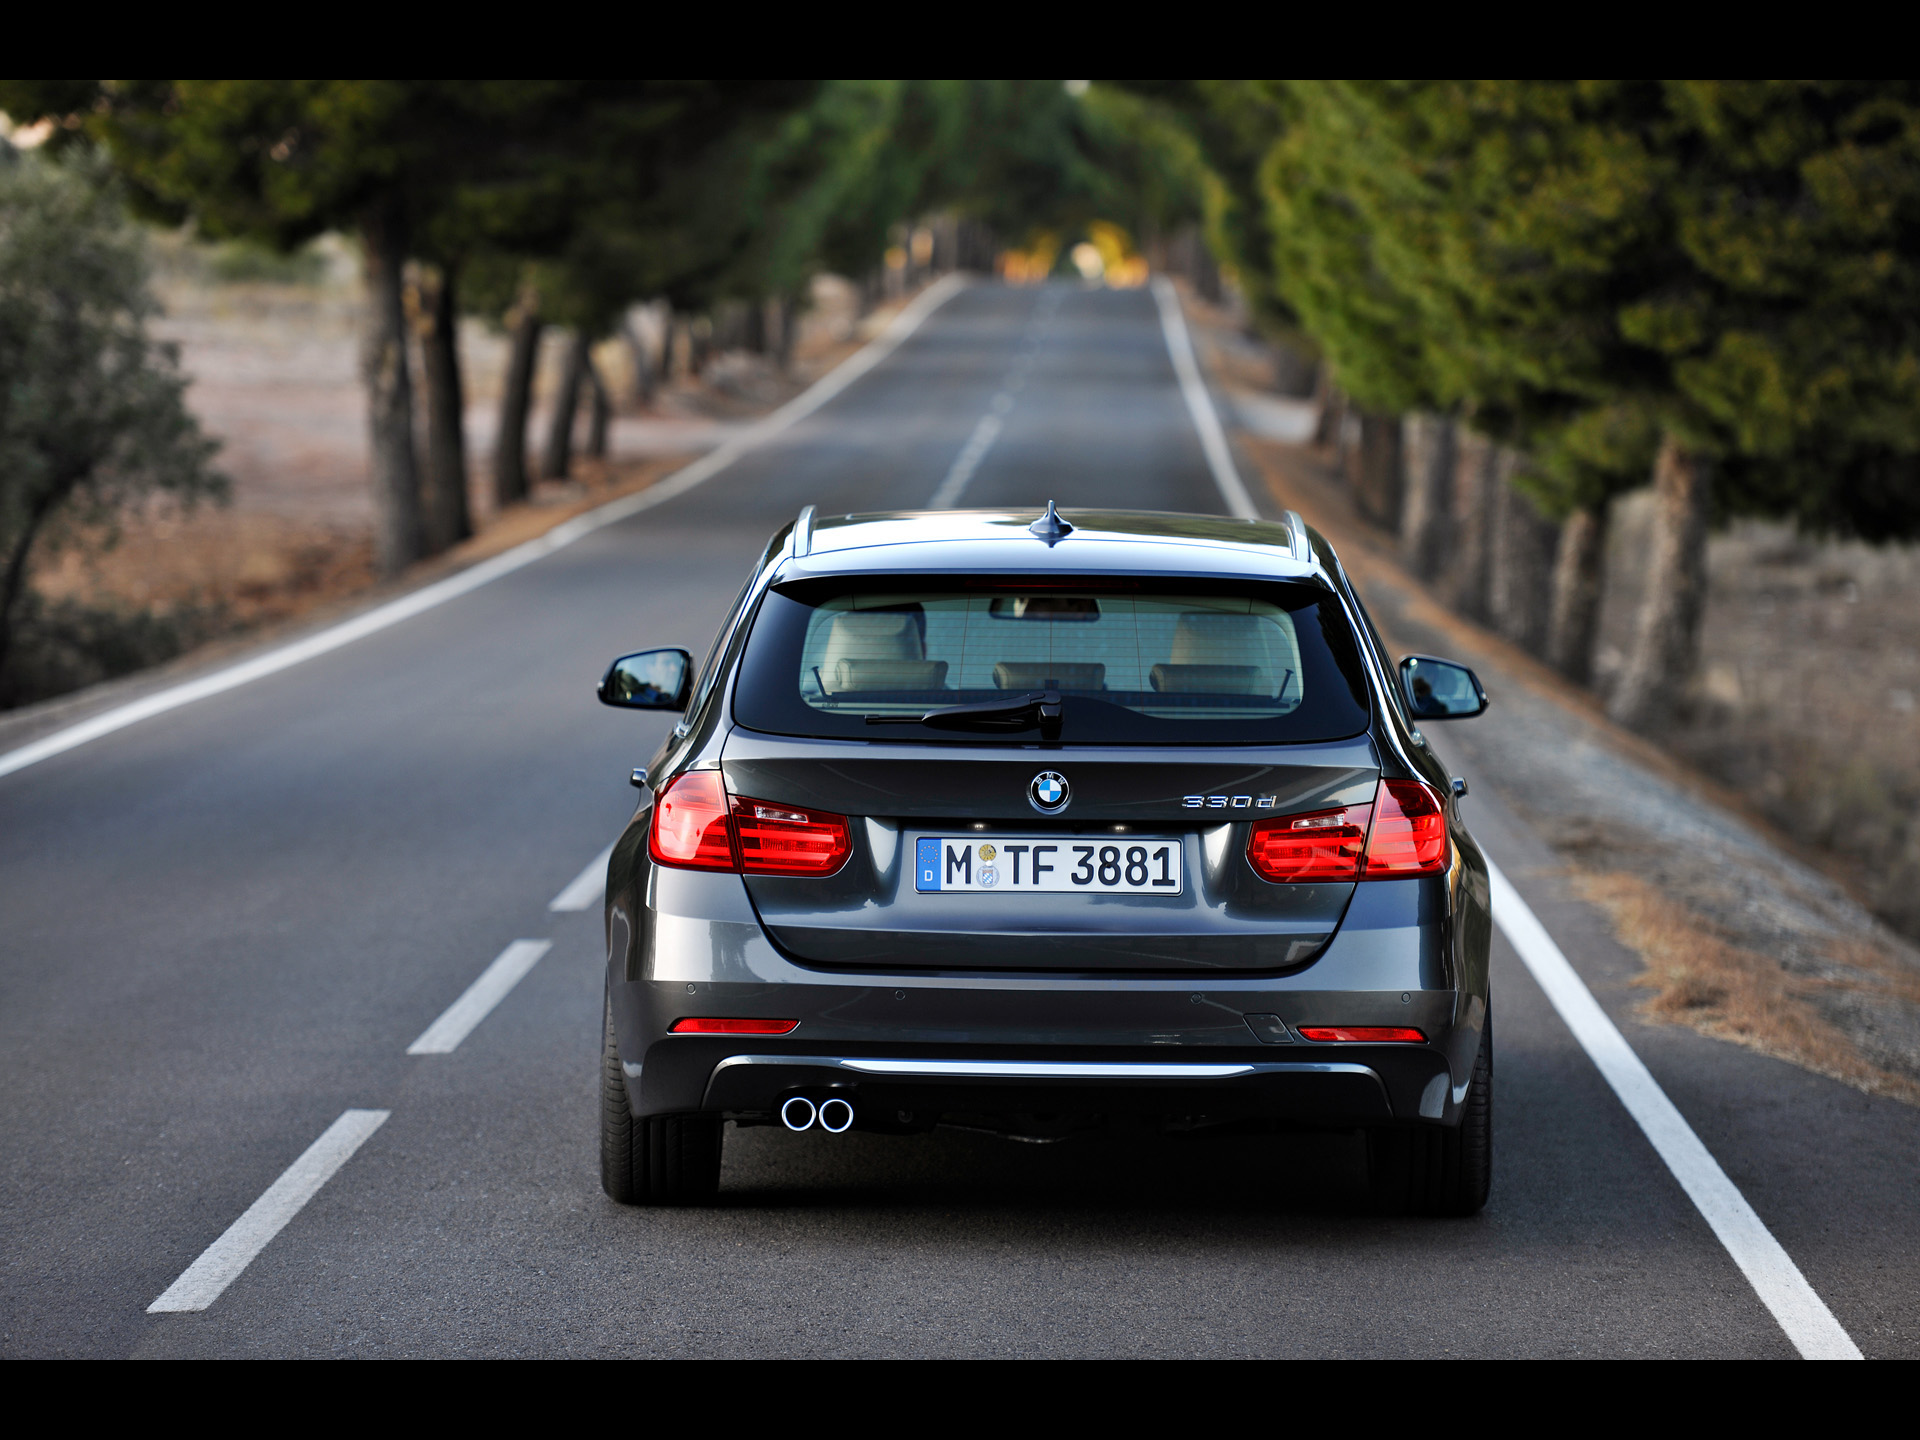 BMW 3 series 330d 2012 photo - 4